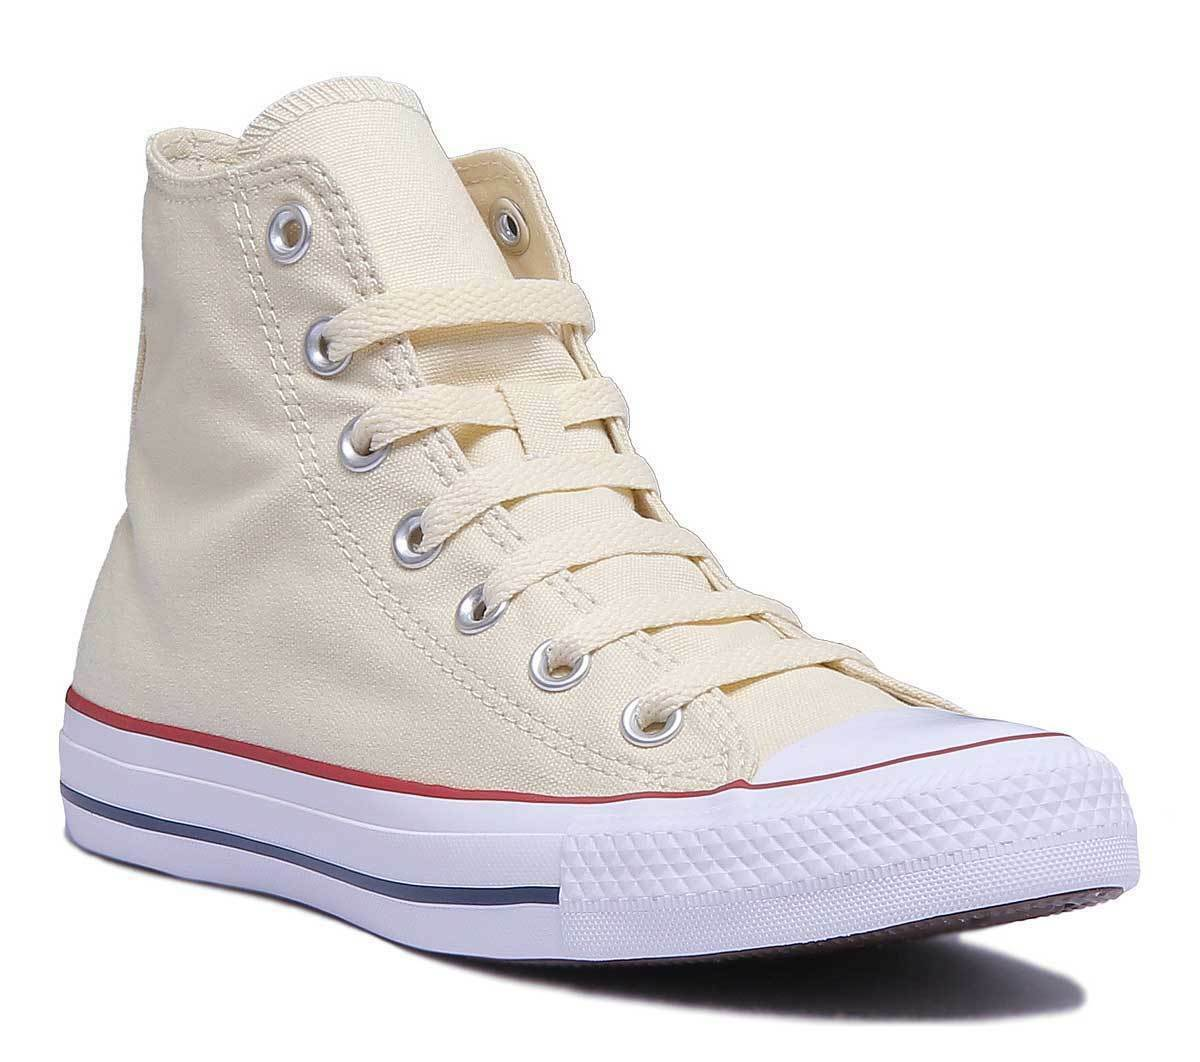 Converse Chuck Taylor All Star Hi Unisex Canvas Natural WEISS Hi Top Trainers Si